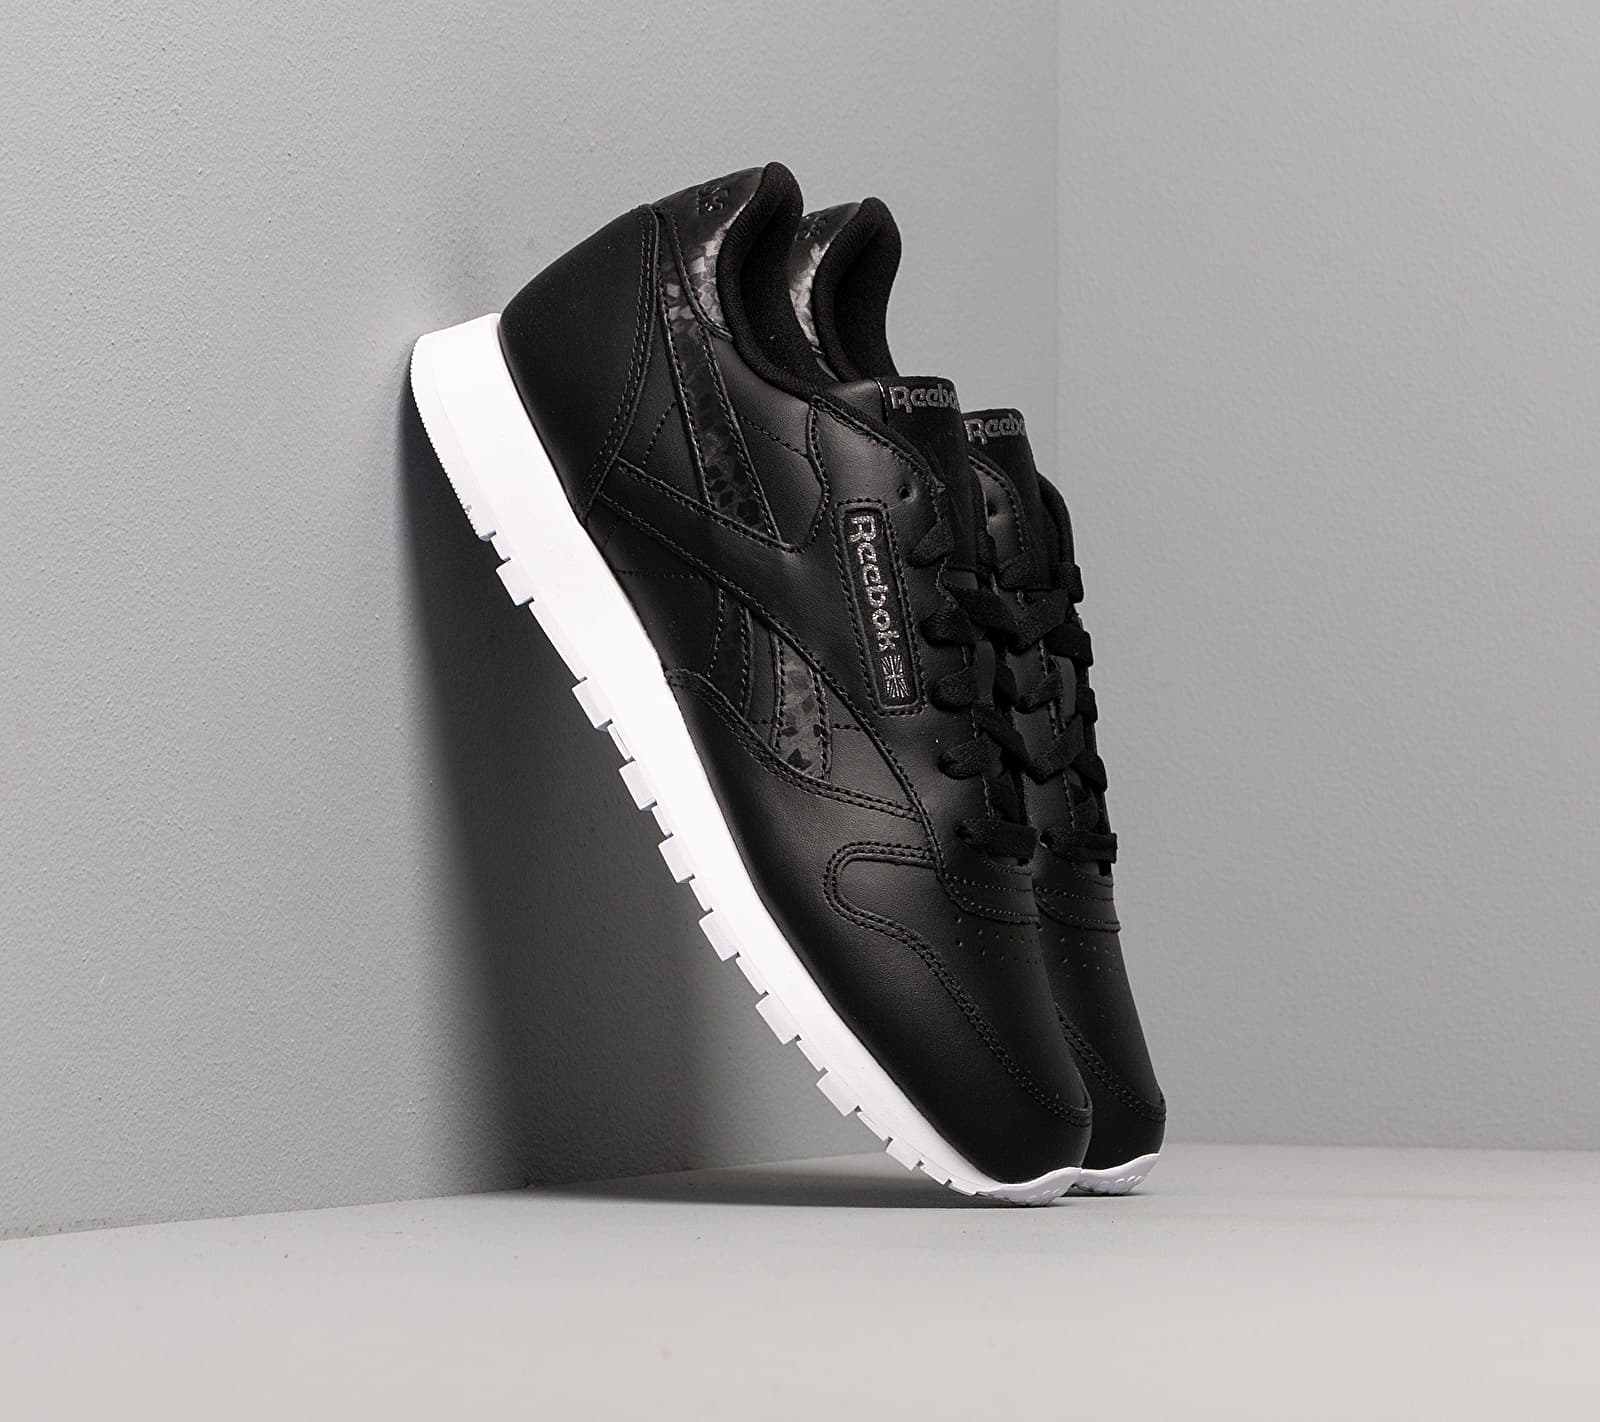 Reebok Classic Leather Black/ Black/ White EUR 40.5